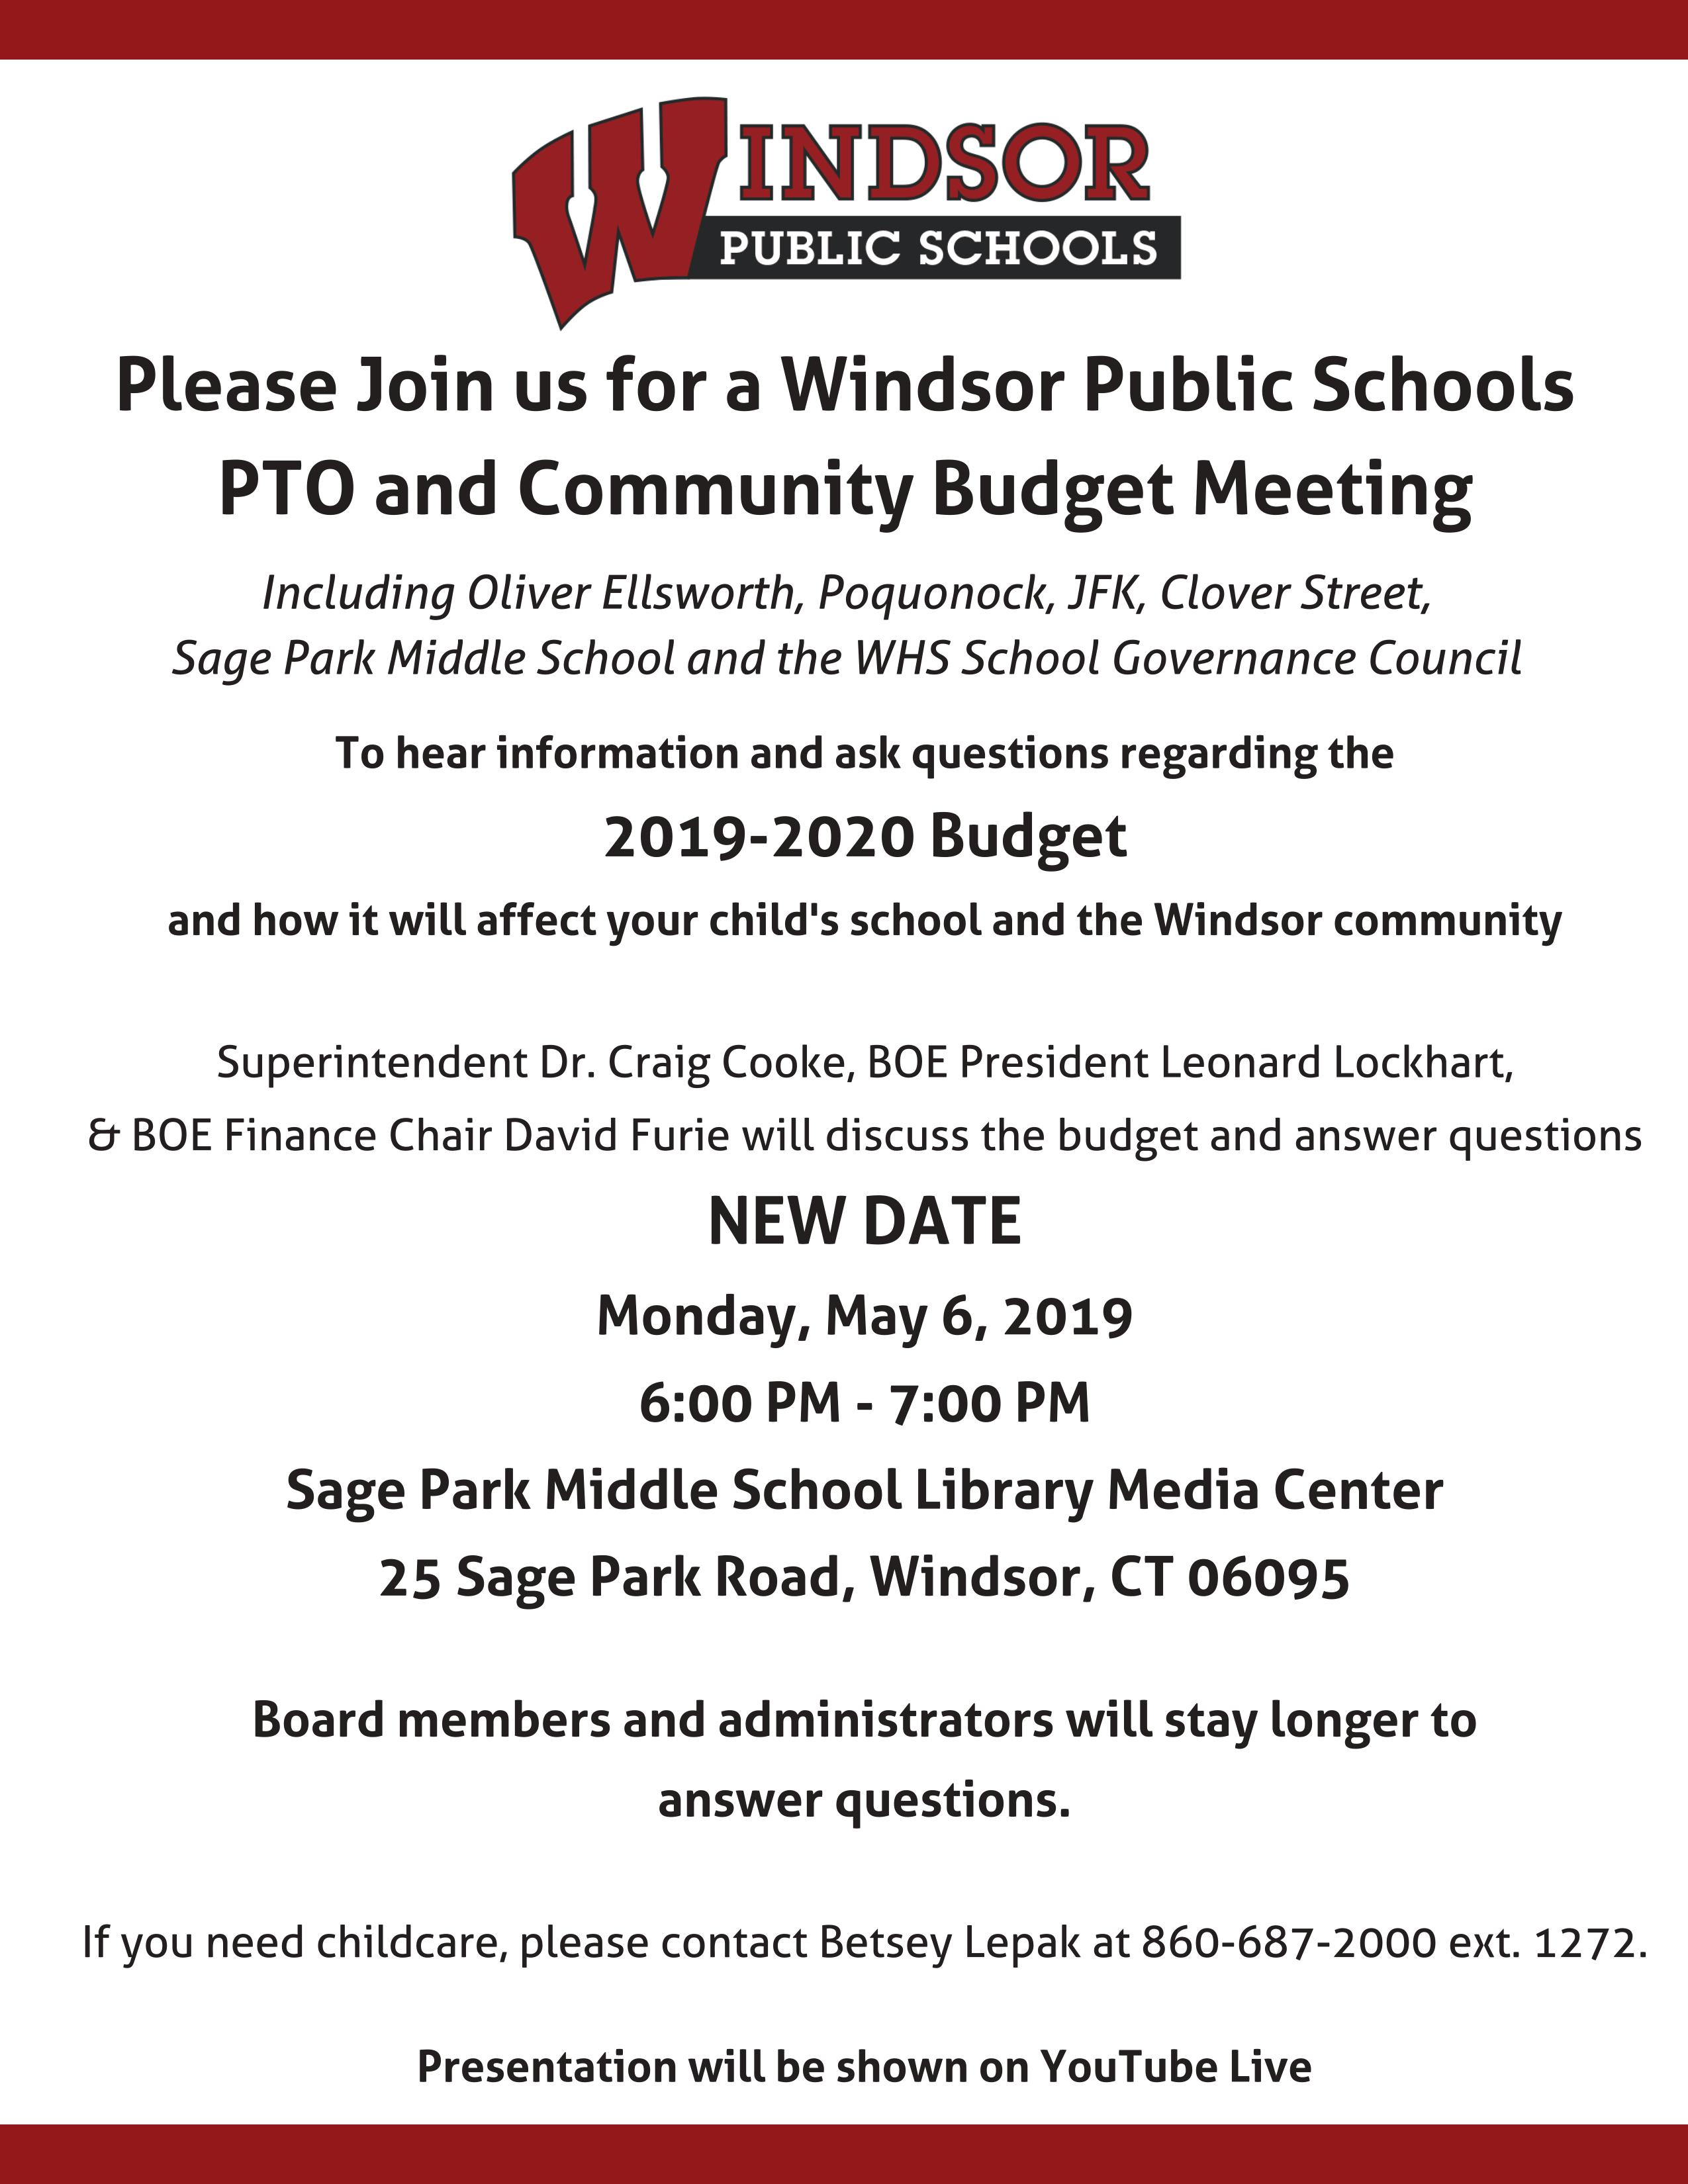 How will the 2019-20 Budget affect my child's school?